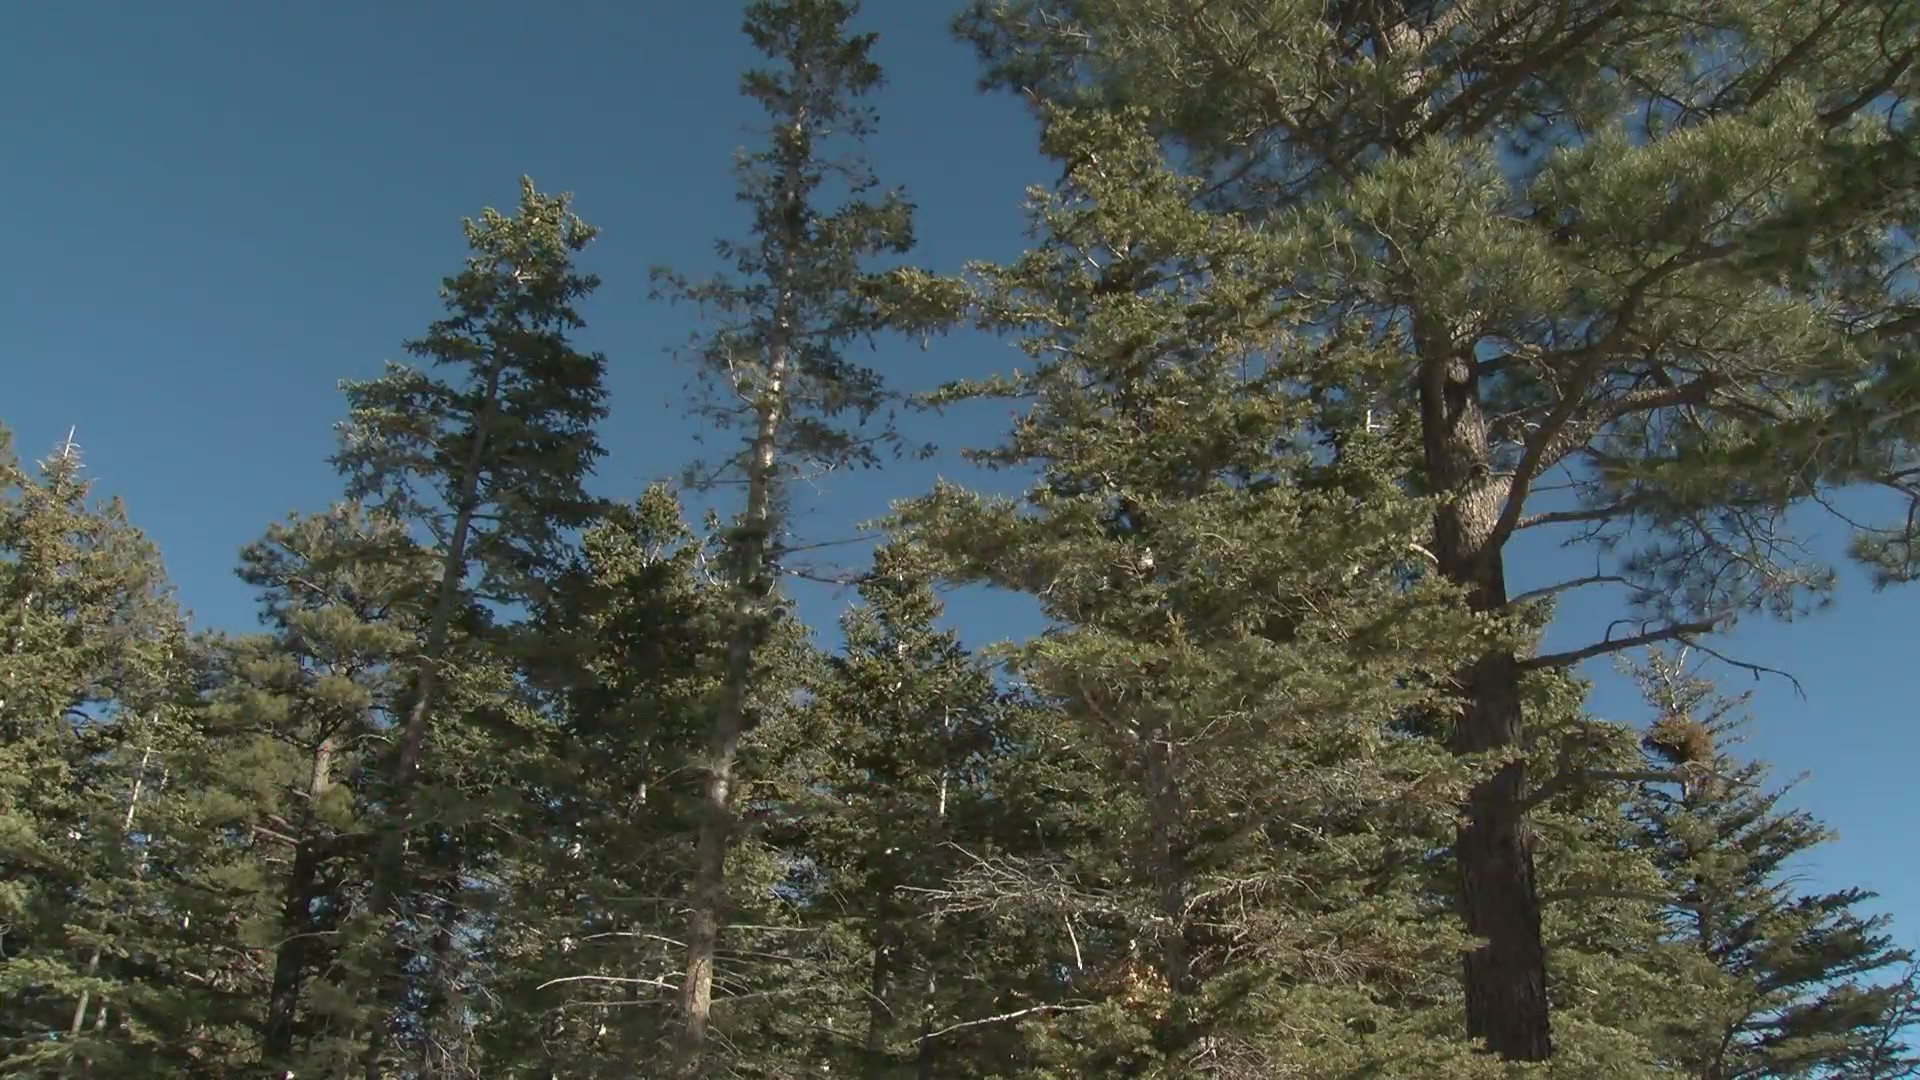 Santa Fe National Forest Considers Fall Prescribed Burns Krqe News 13